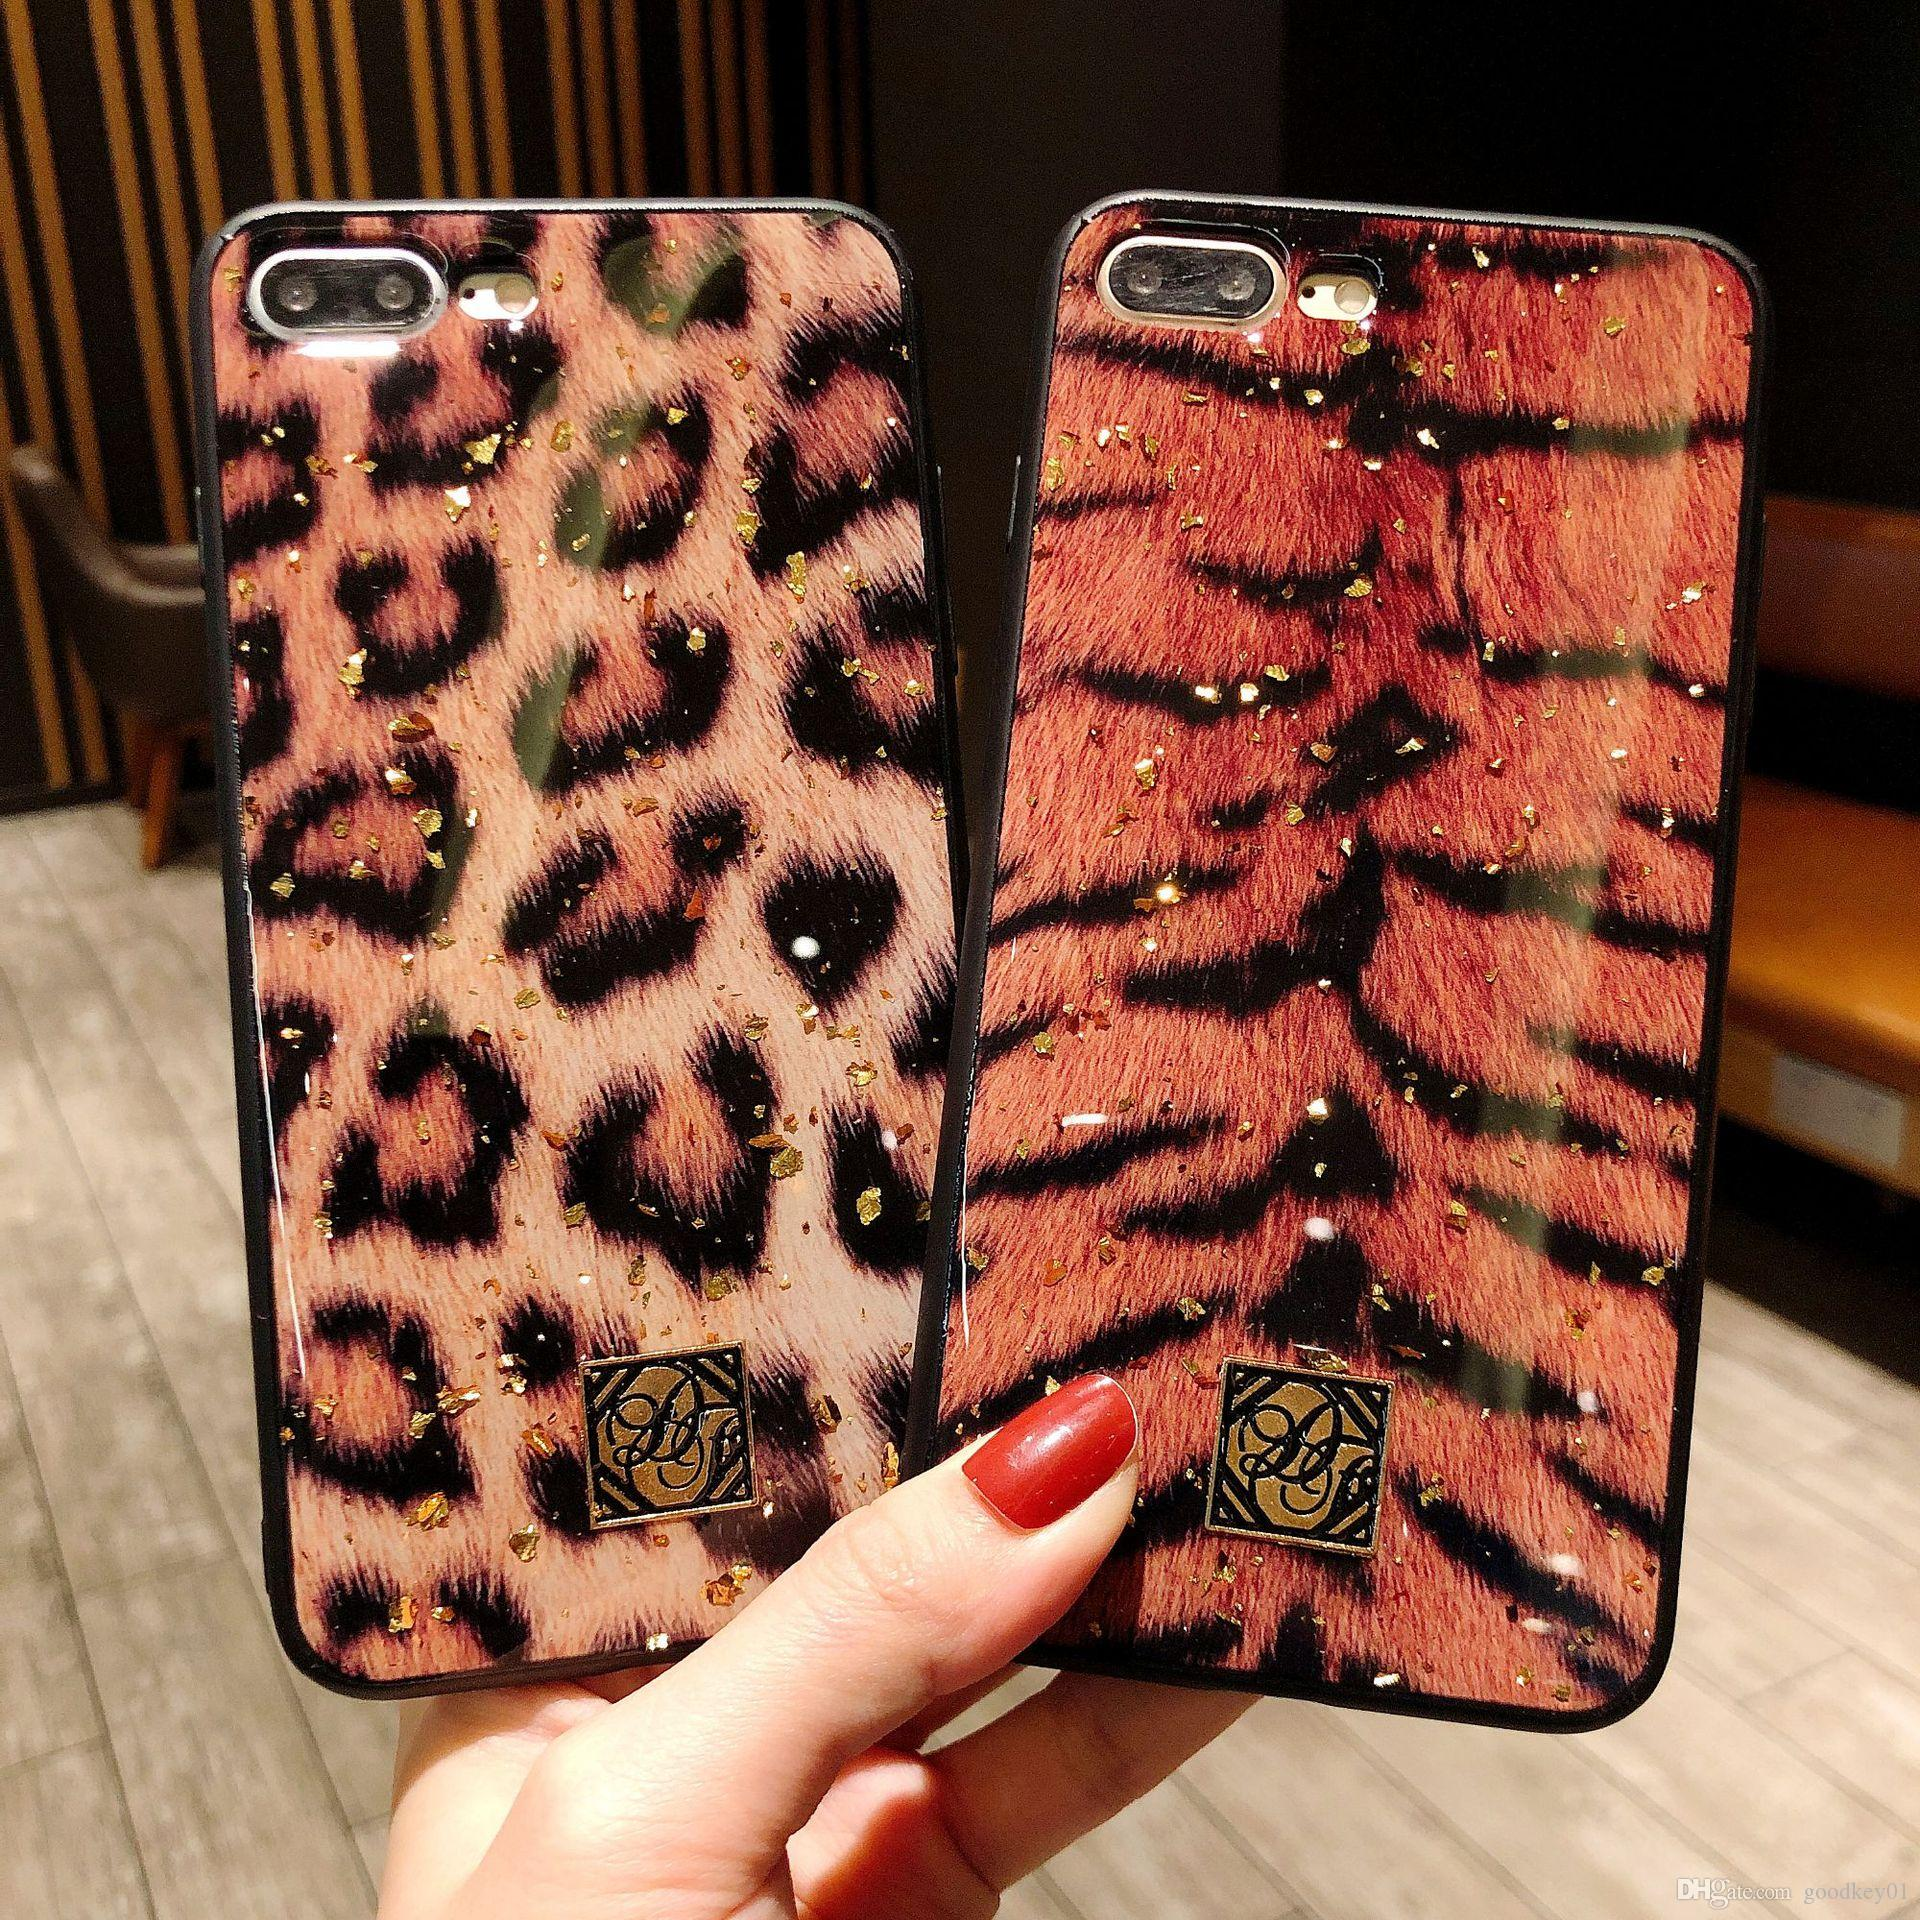 reputable site f19f2 798ba For iphoneXs Xsmax xr iPhone 7 plus 6S plus 8 8plus X Fashion Tiger Leopard  Print Panther Soft Phone Case Glitter Mobile Cover